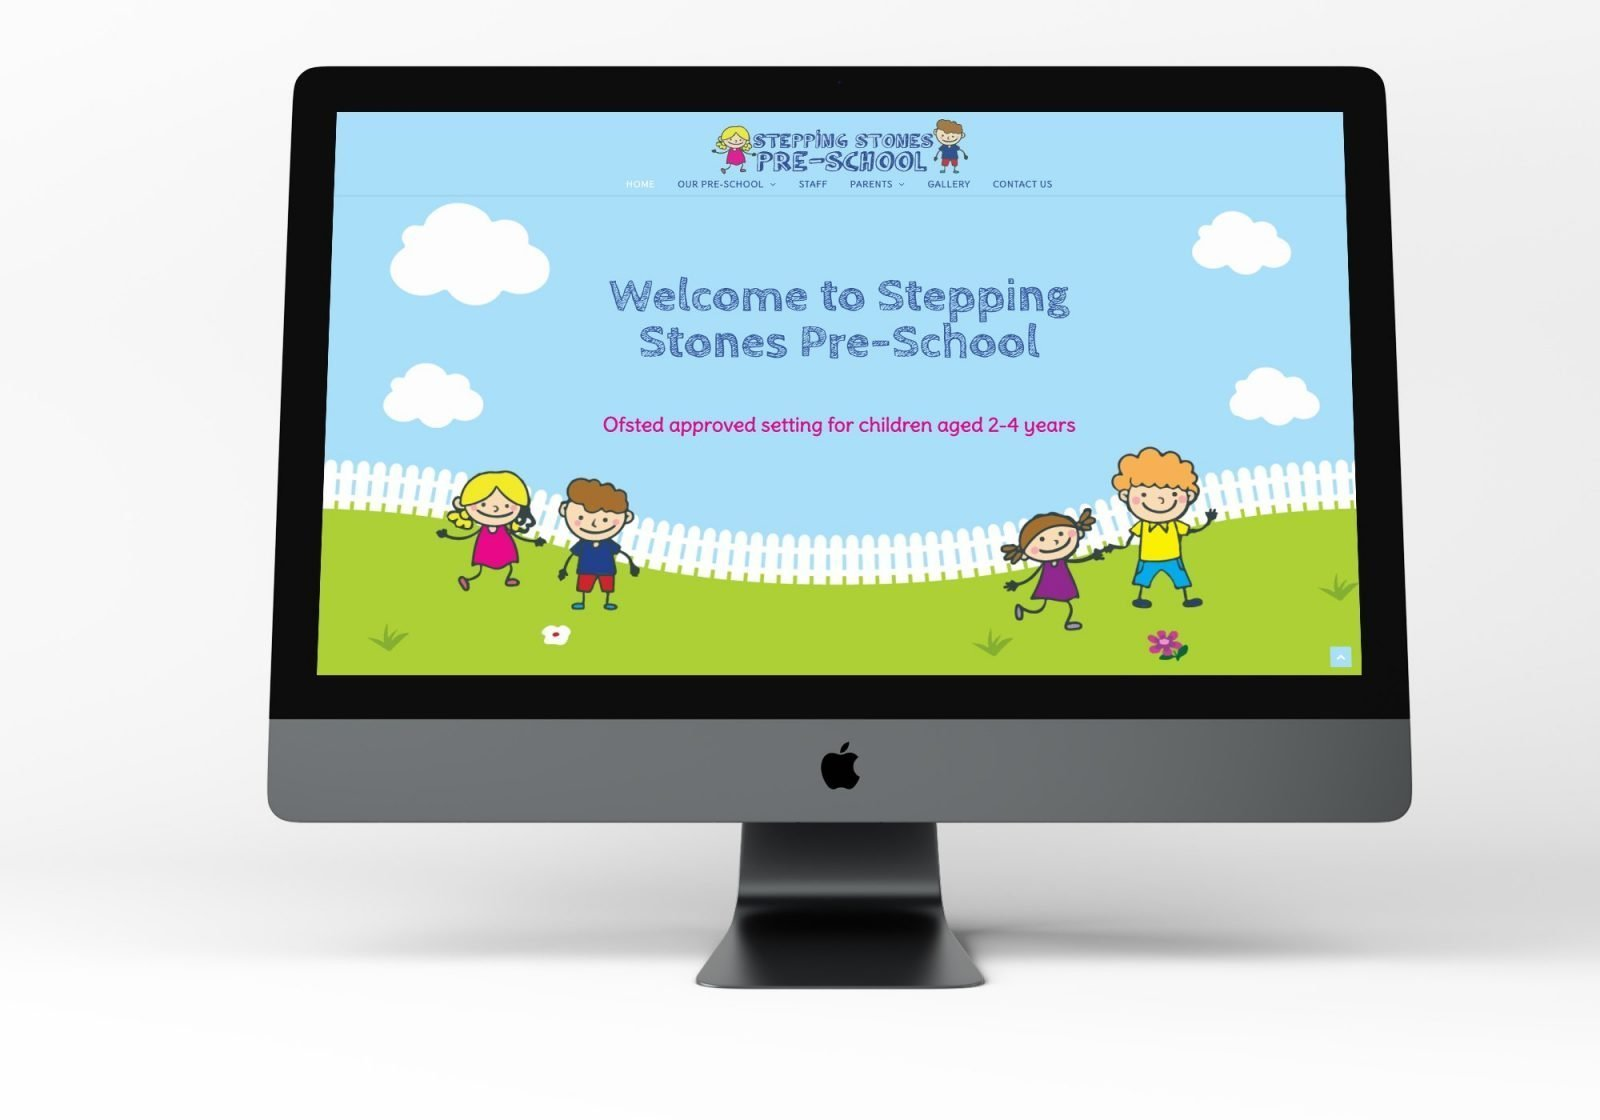 A omputer showing the home page for Stepping Stones Pre-School website design